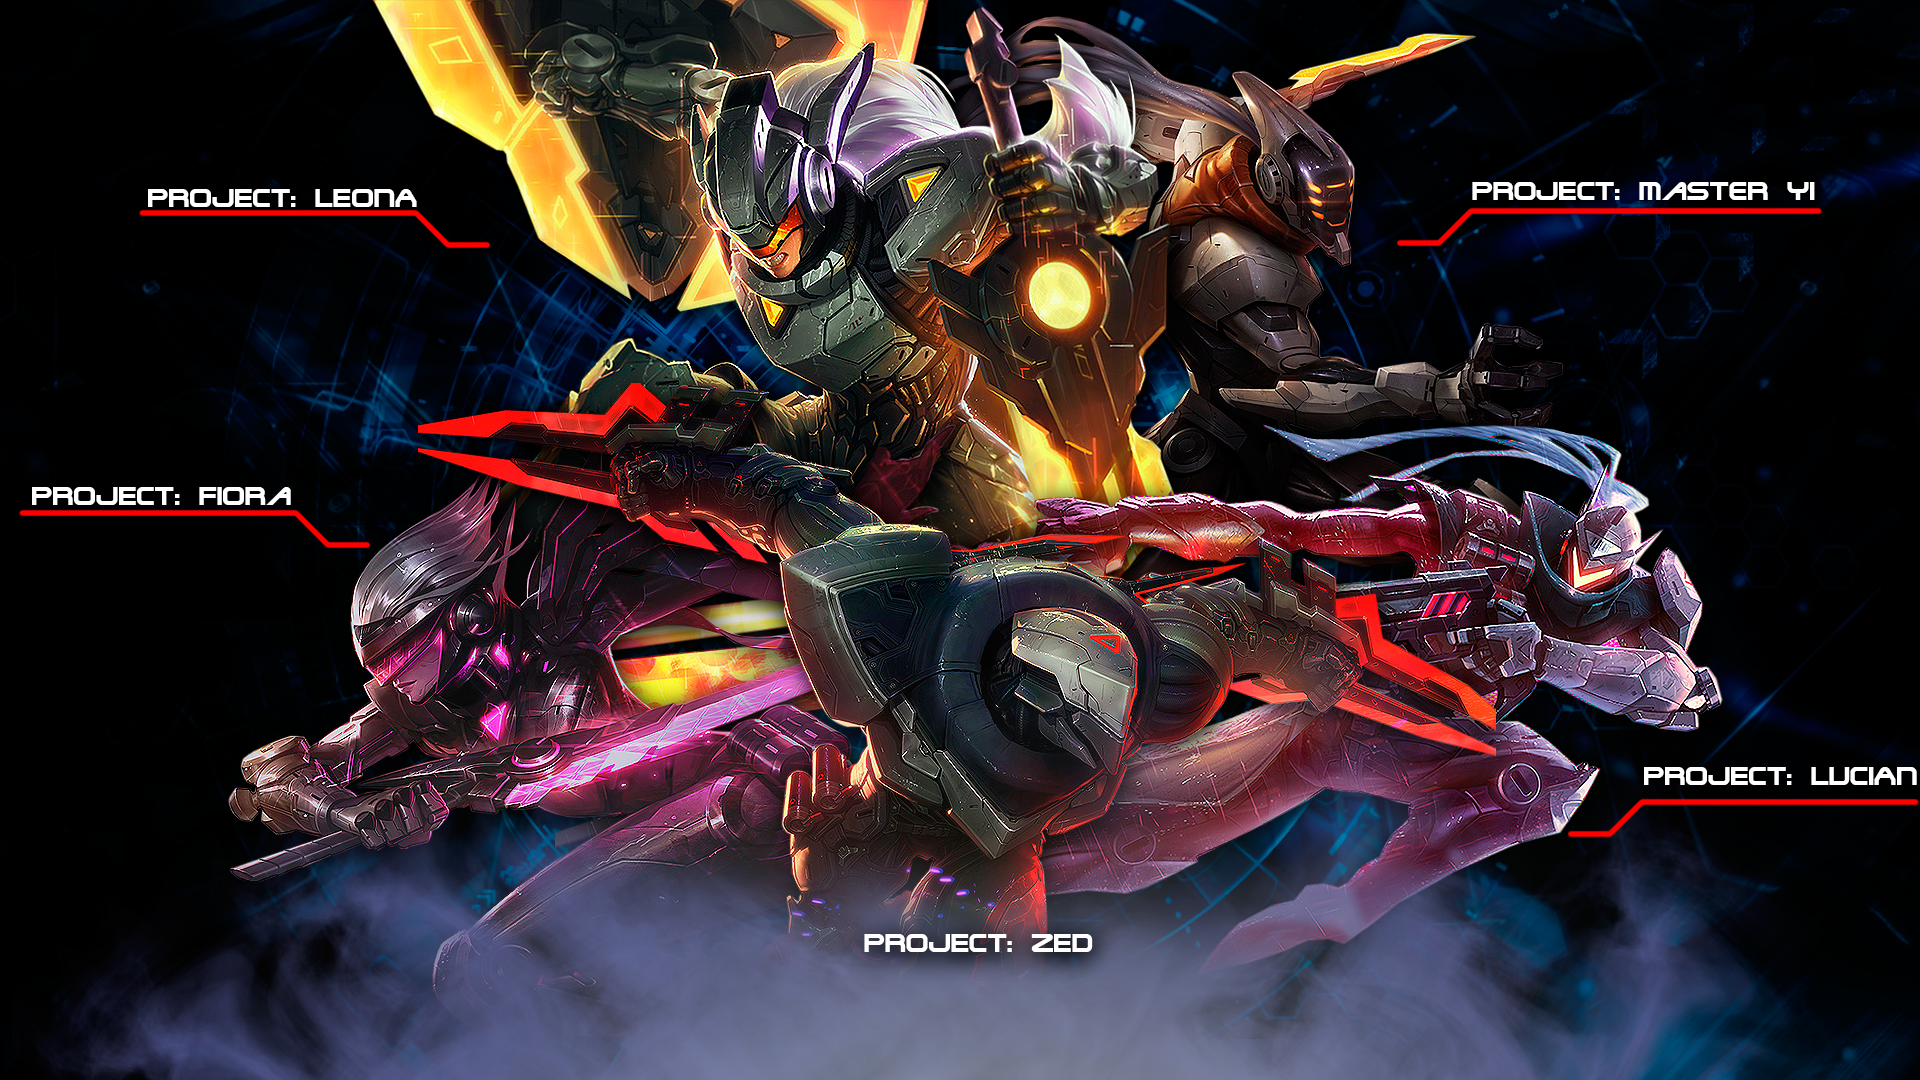 Project Zed Splash Art